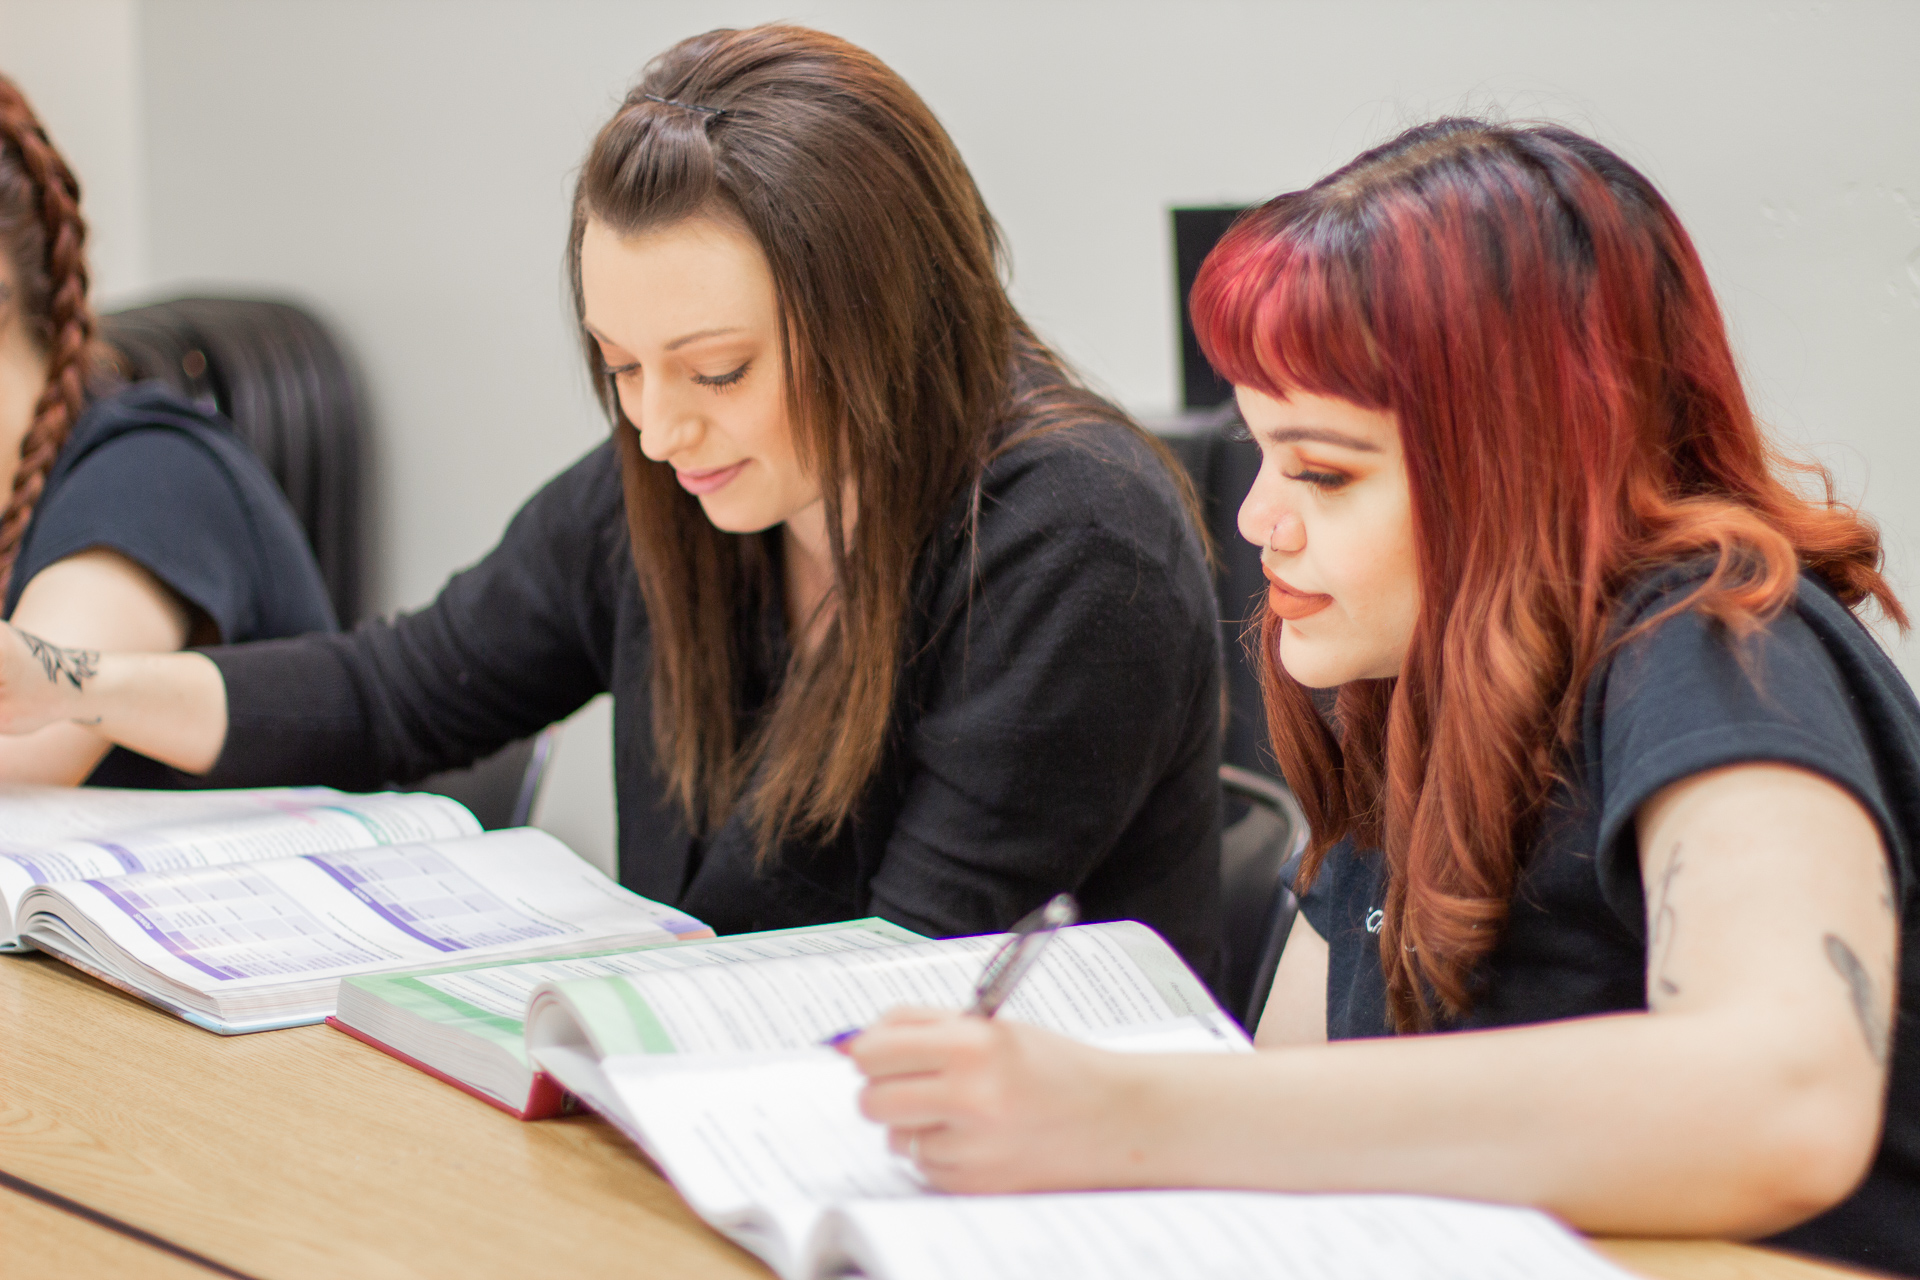 Two women studying together in beauty school